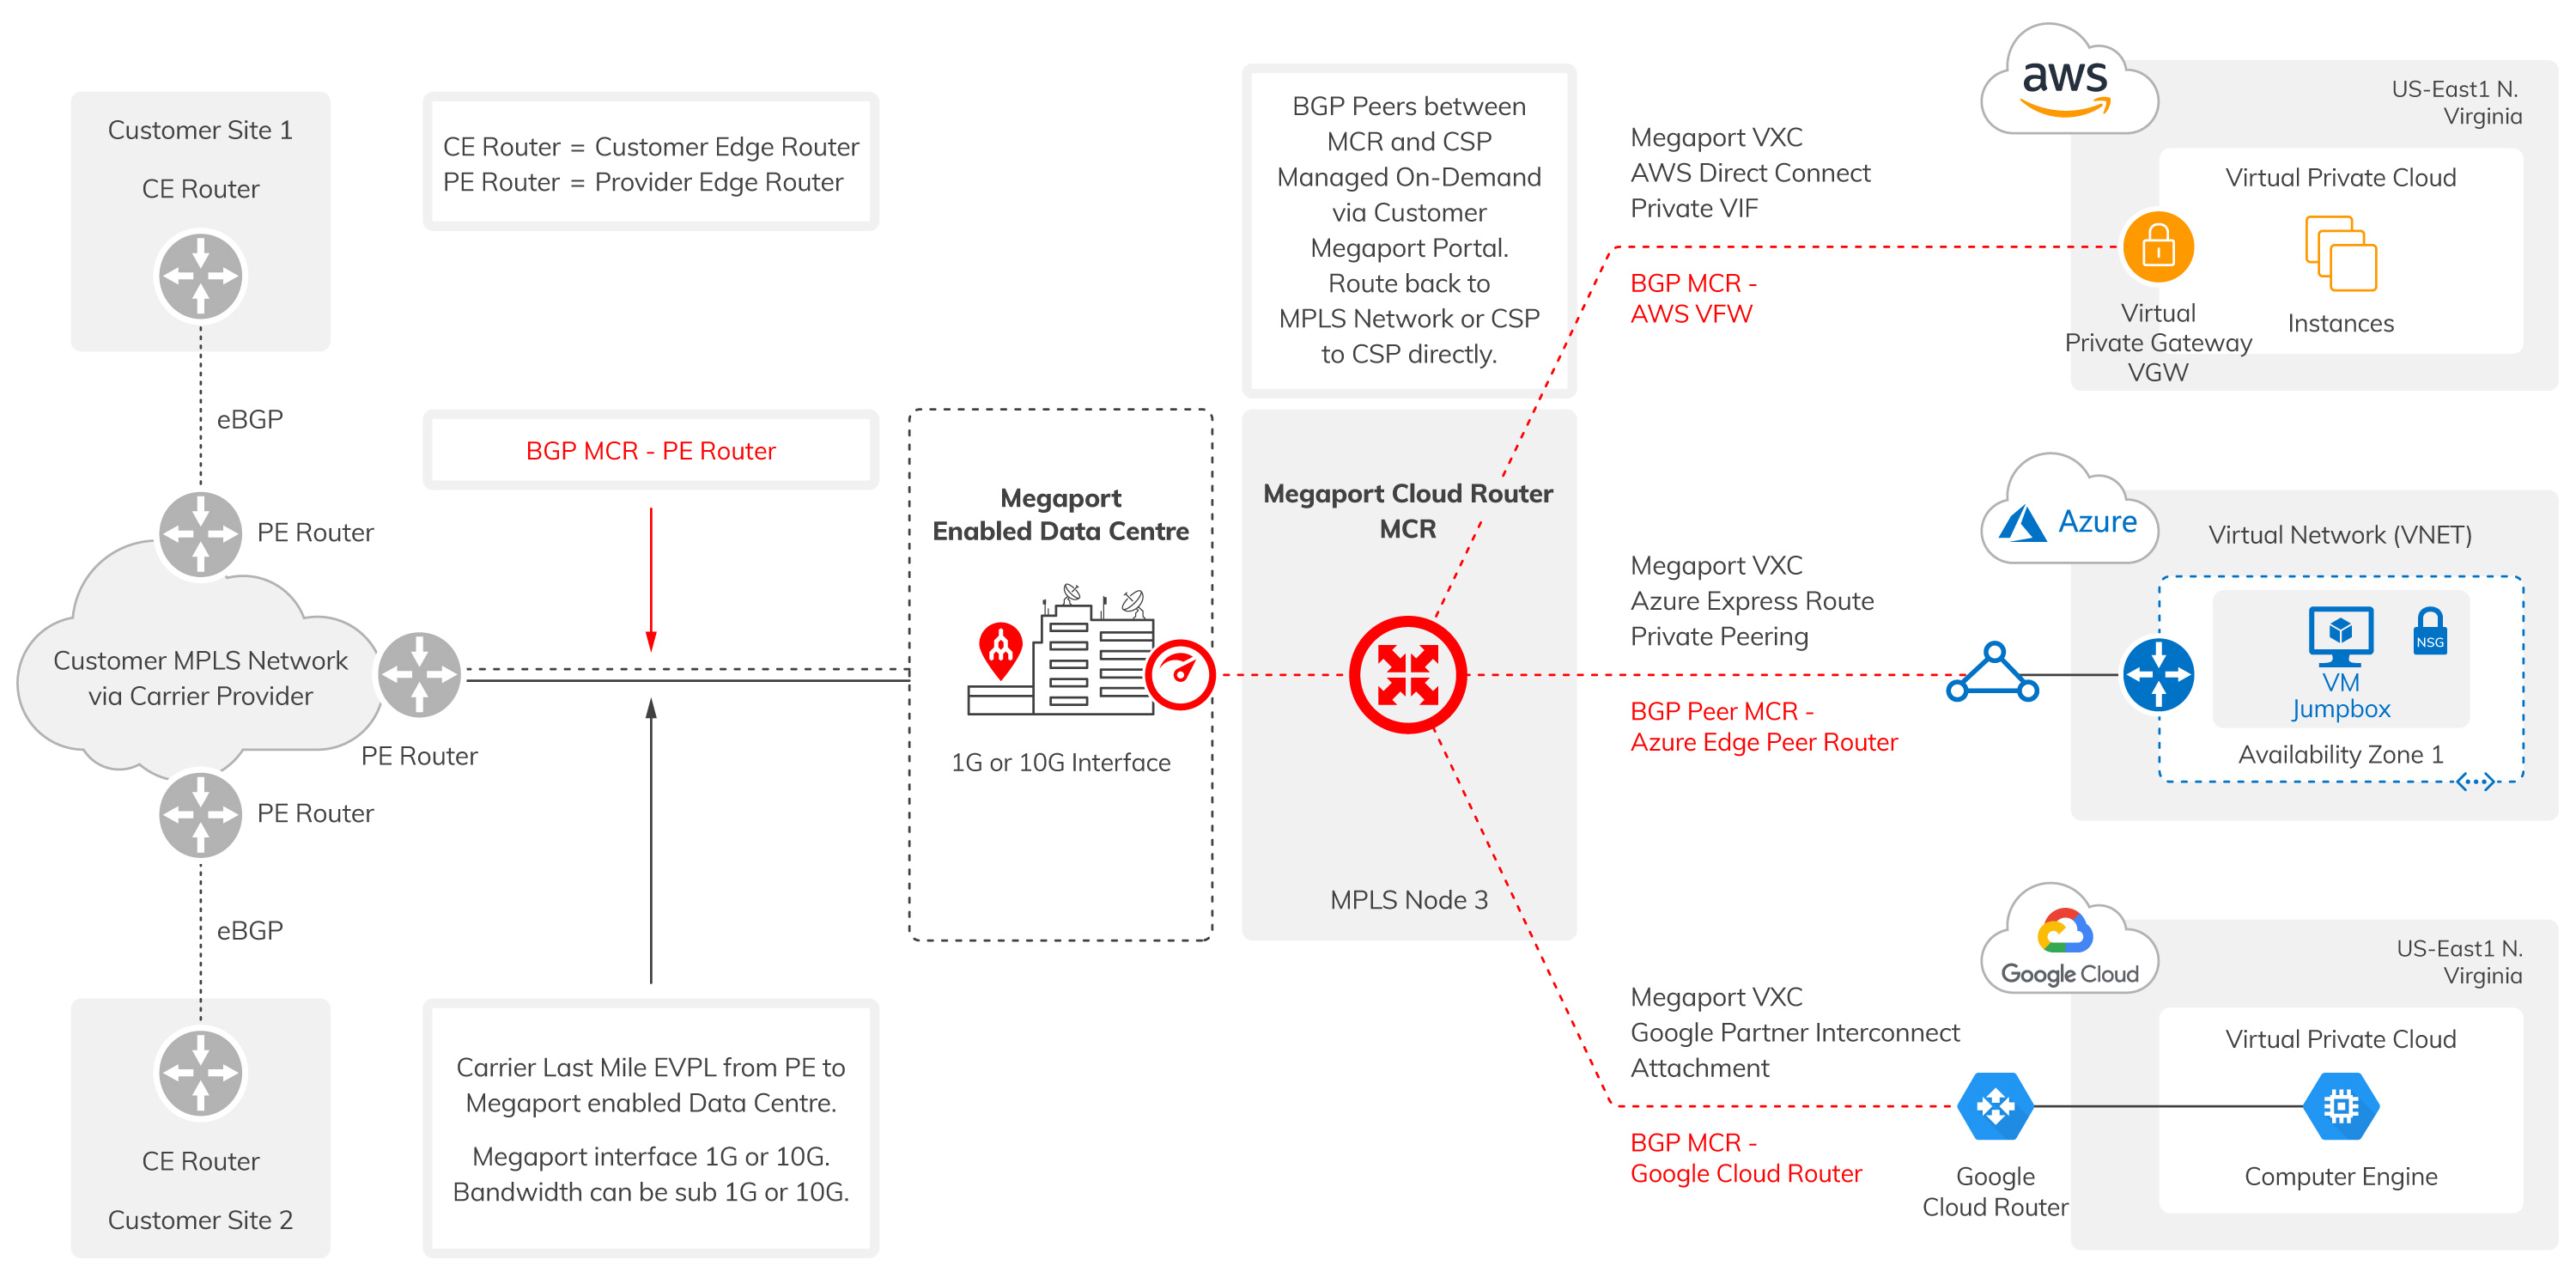 Mpls Network Diagram Connecting An Mpls Network To The Cloud Megaport Networks